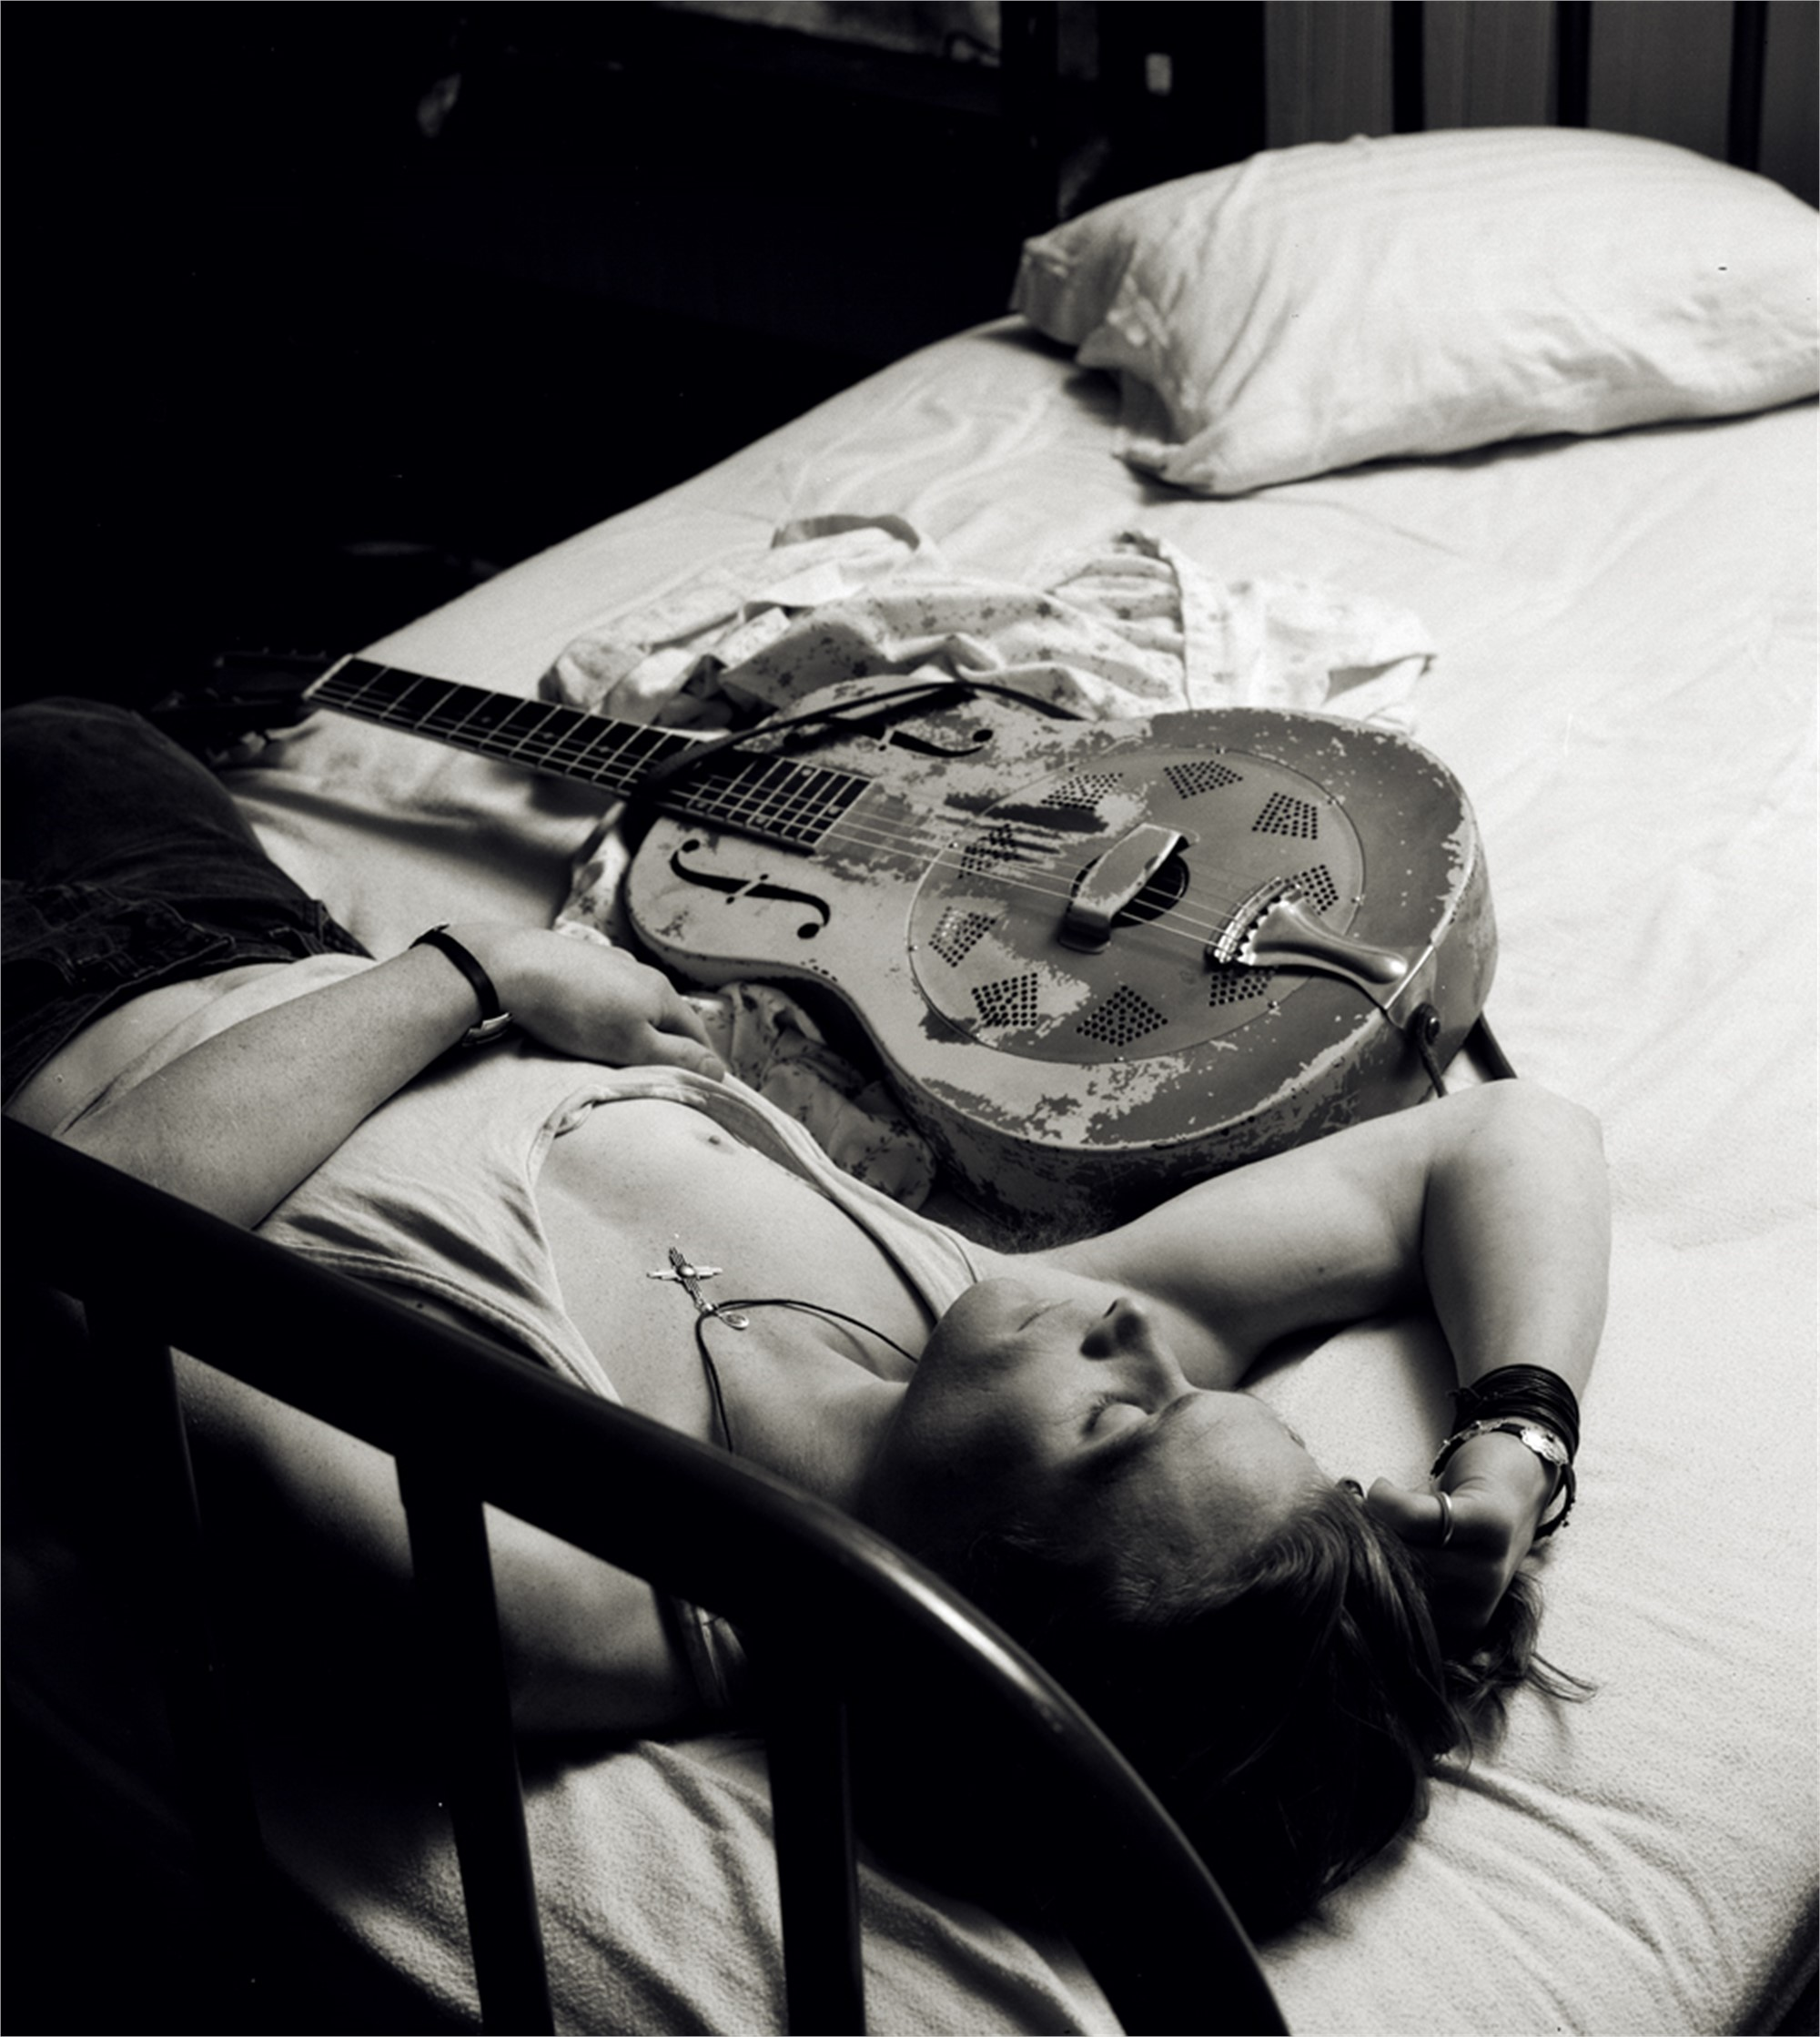 91026 Chris Whitley Bed with Guitar 01 Crop 2 BW by Timothy White